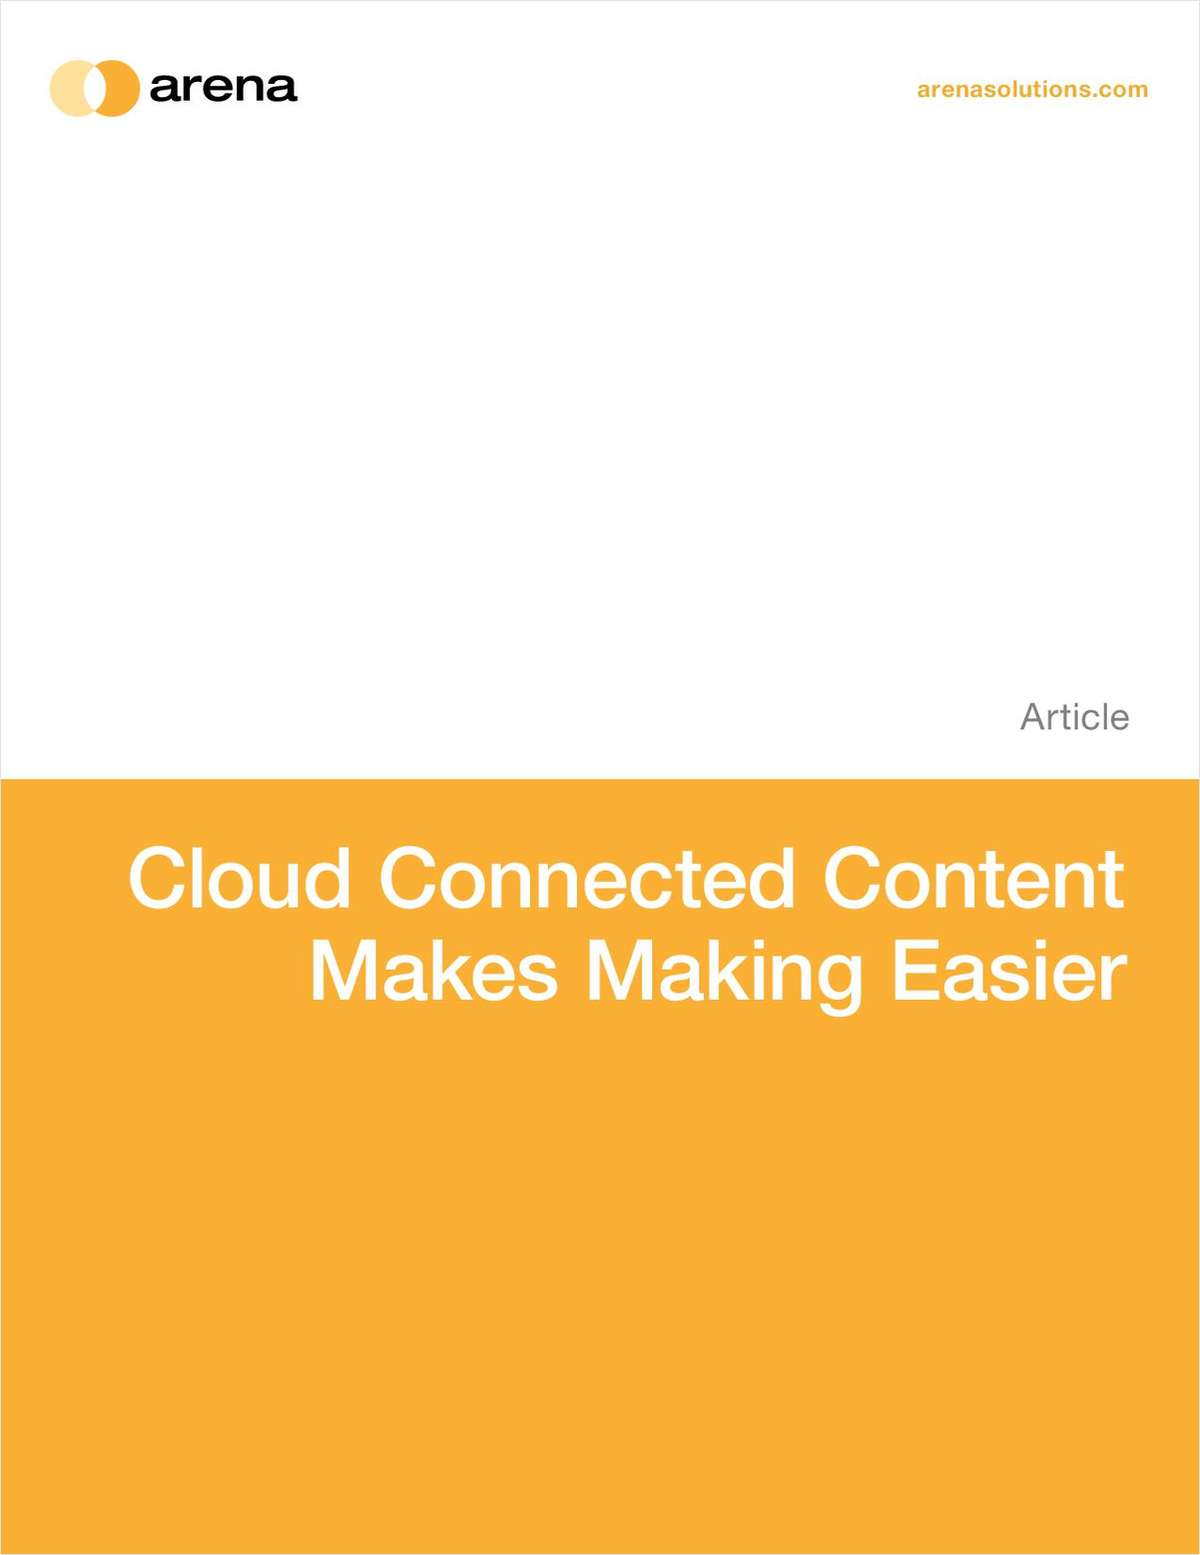 Cloud Connected Content Makes Making Easier